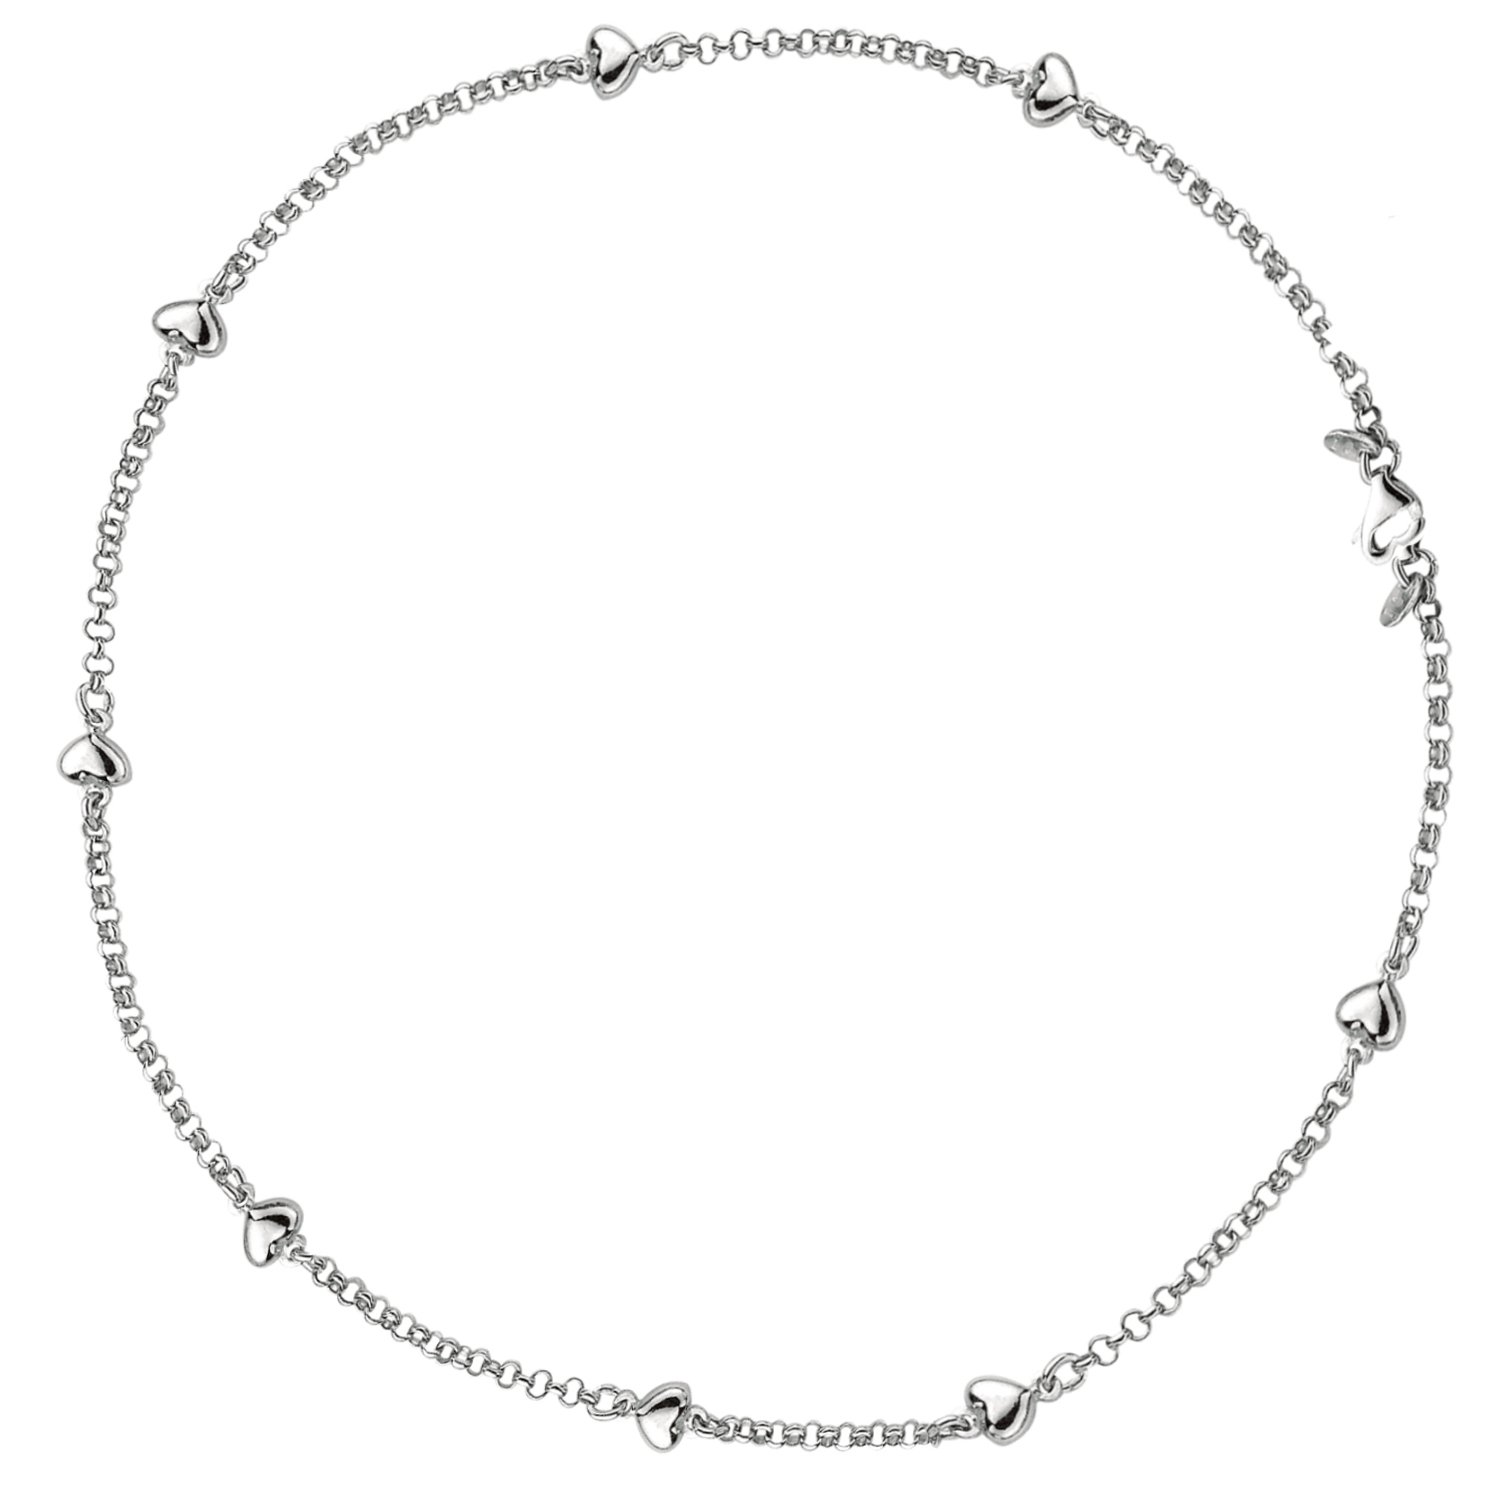 Sterling Silver Puffed Heart Station Rolo Link Chain Anklet 10 Inches by Ritastephens